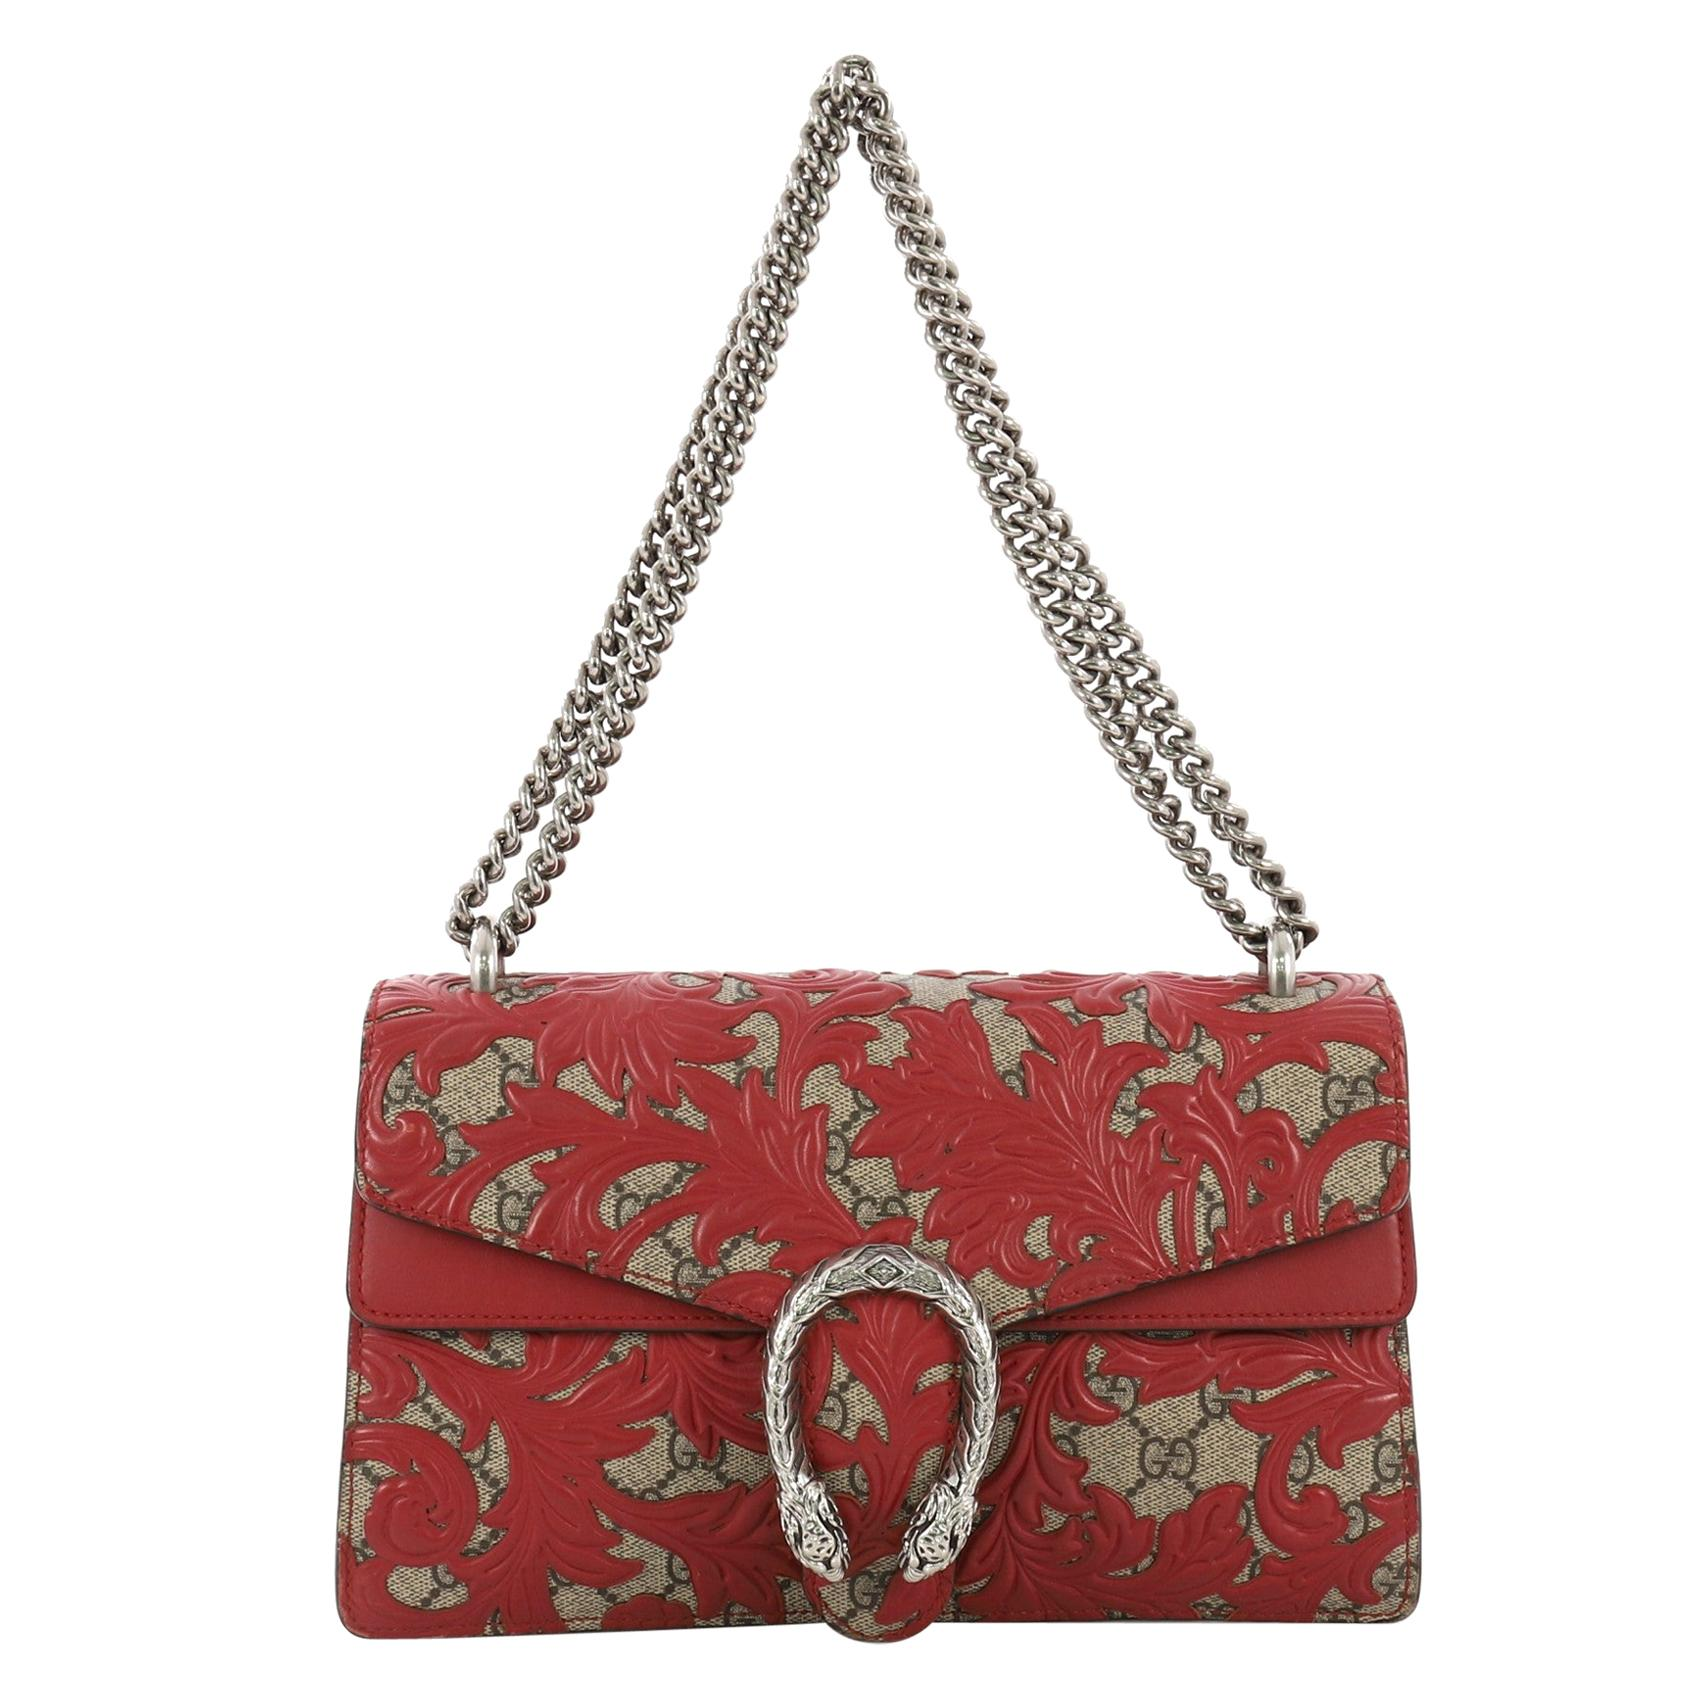 4b8f78f07030 Vintage Gucci Handbags and Purses - 2,046 For Sale at 1stdibs